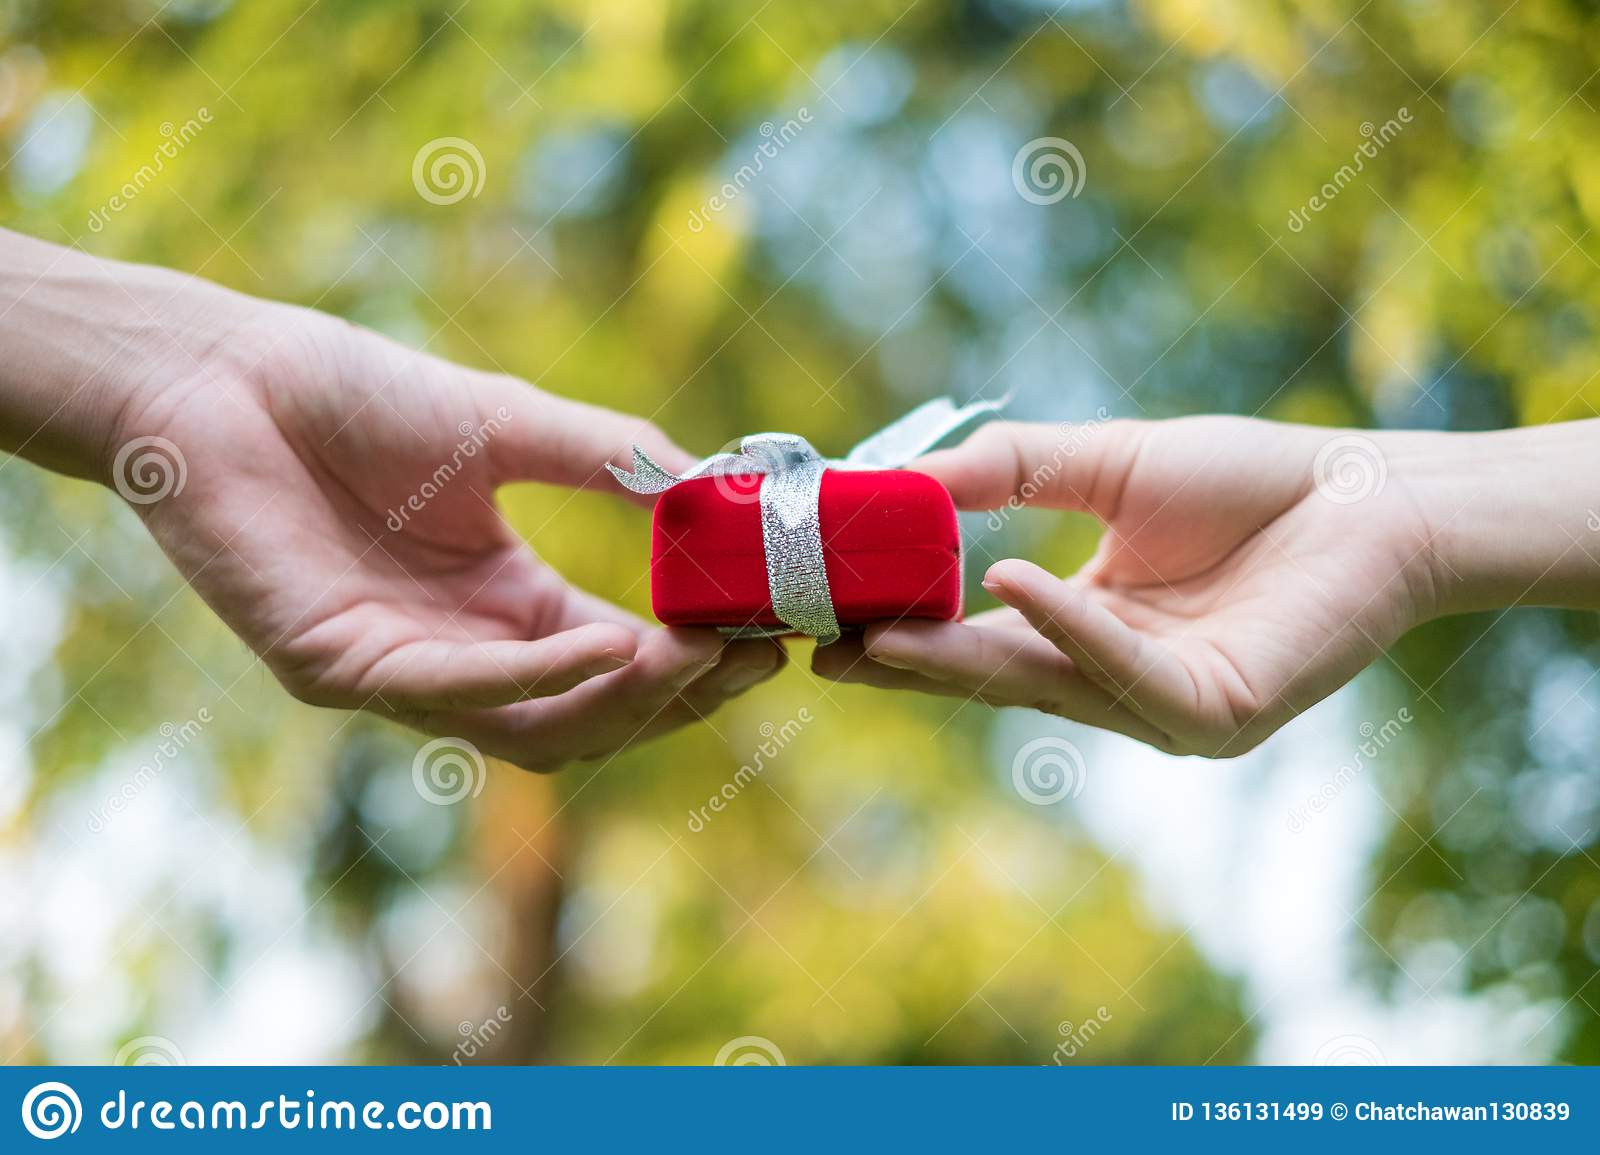 Giving red gift box in with hands On special days for special person, on grass background. Wedding ring box